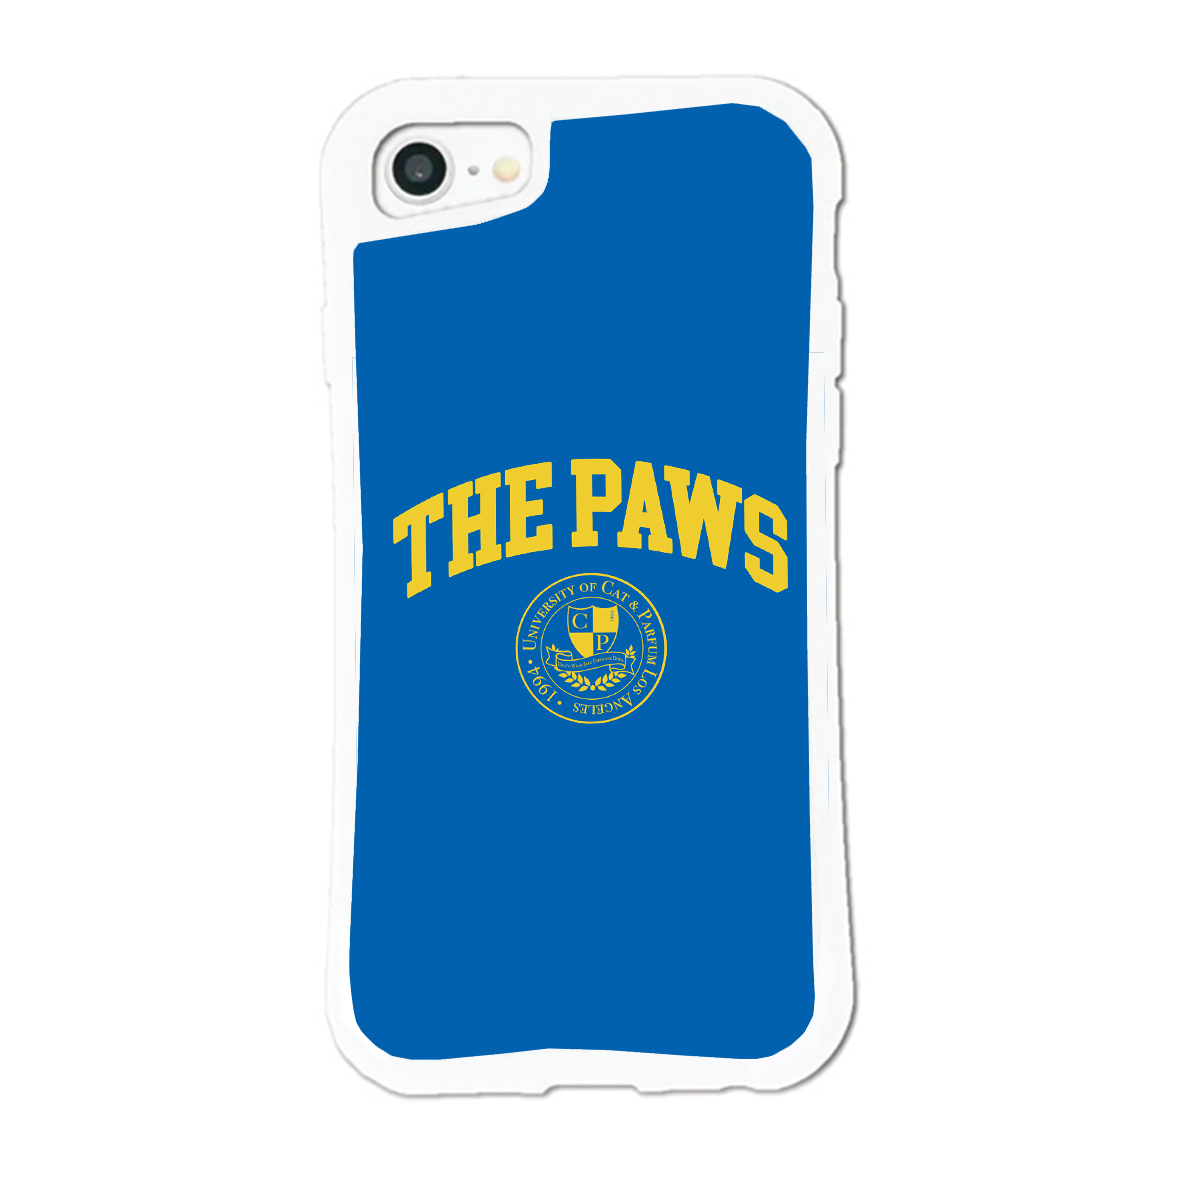 THE PAWS University iPhone Case